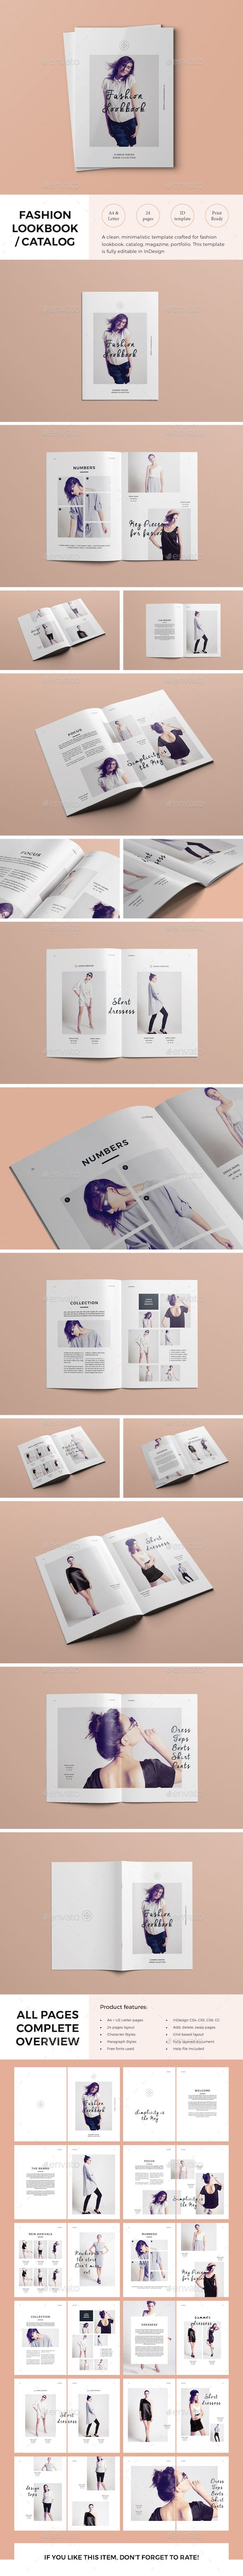 pin by best graphic design on lookbook templates pinterest